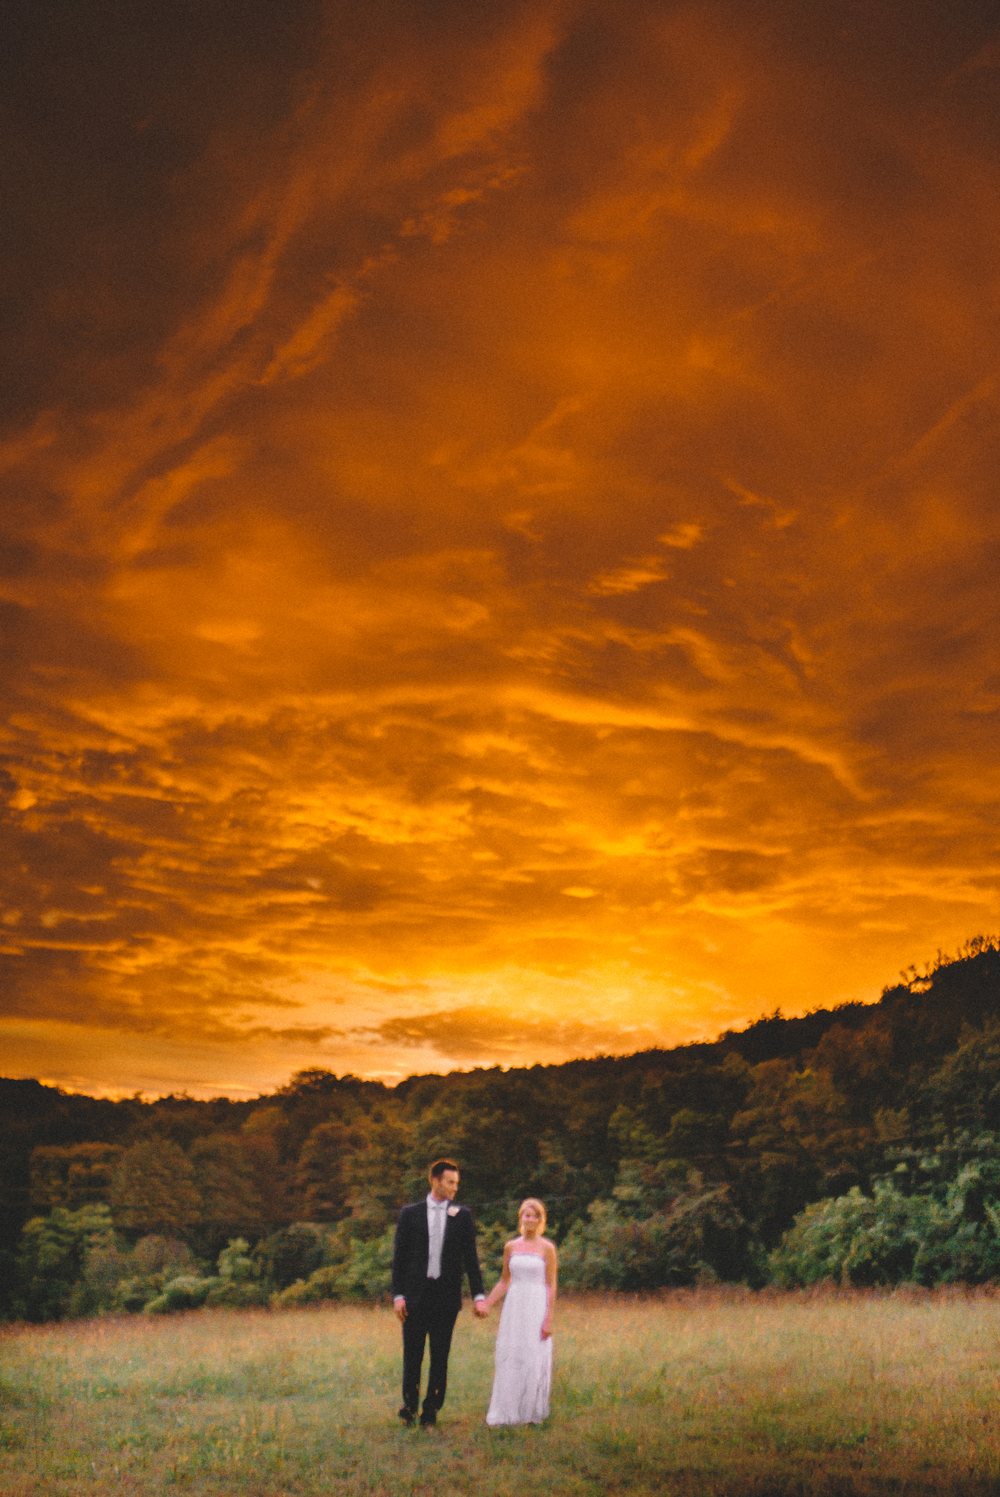 Again the earth looks like it's on fire... (no this wasn't photoshopped... its the sun setting below the clouds. it was crazy) and it looks like its a love story being told on the last day before the apocalypse. But Ben and Laura are two of the best people I know. And I am reminded of that every time I see their images.